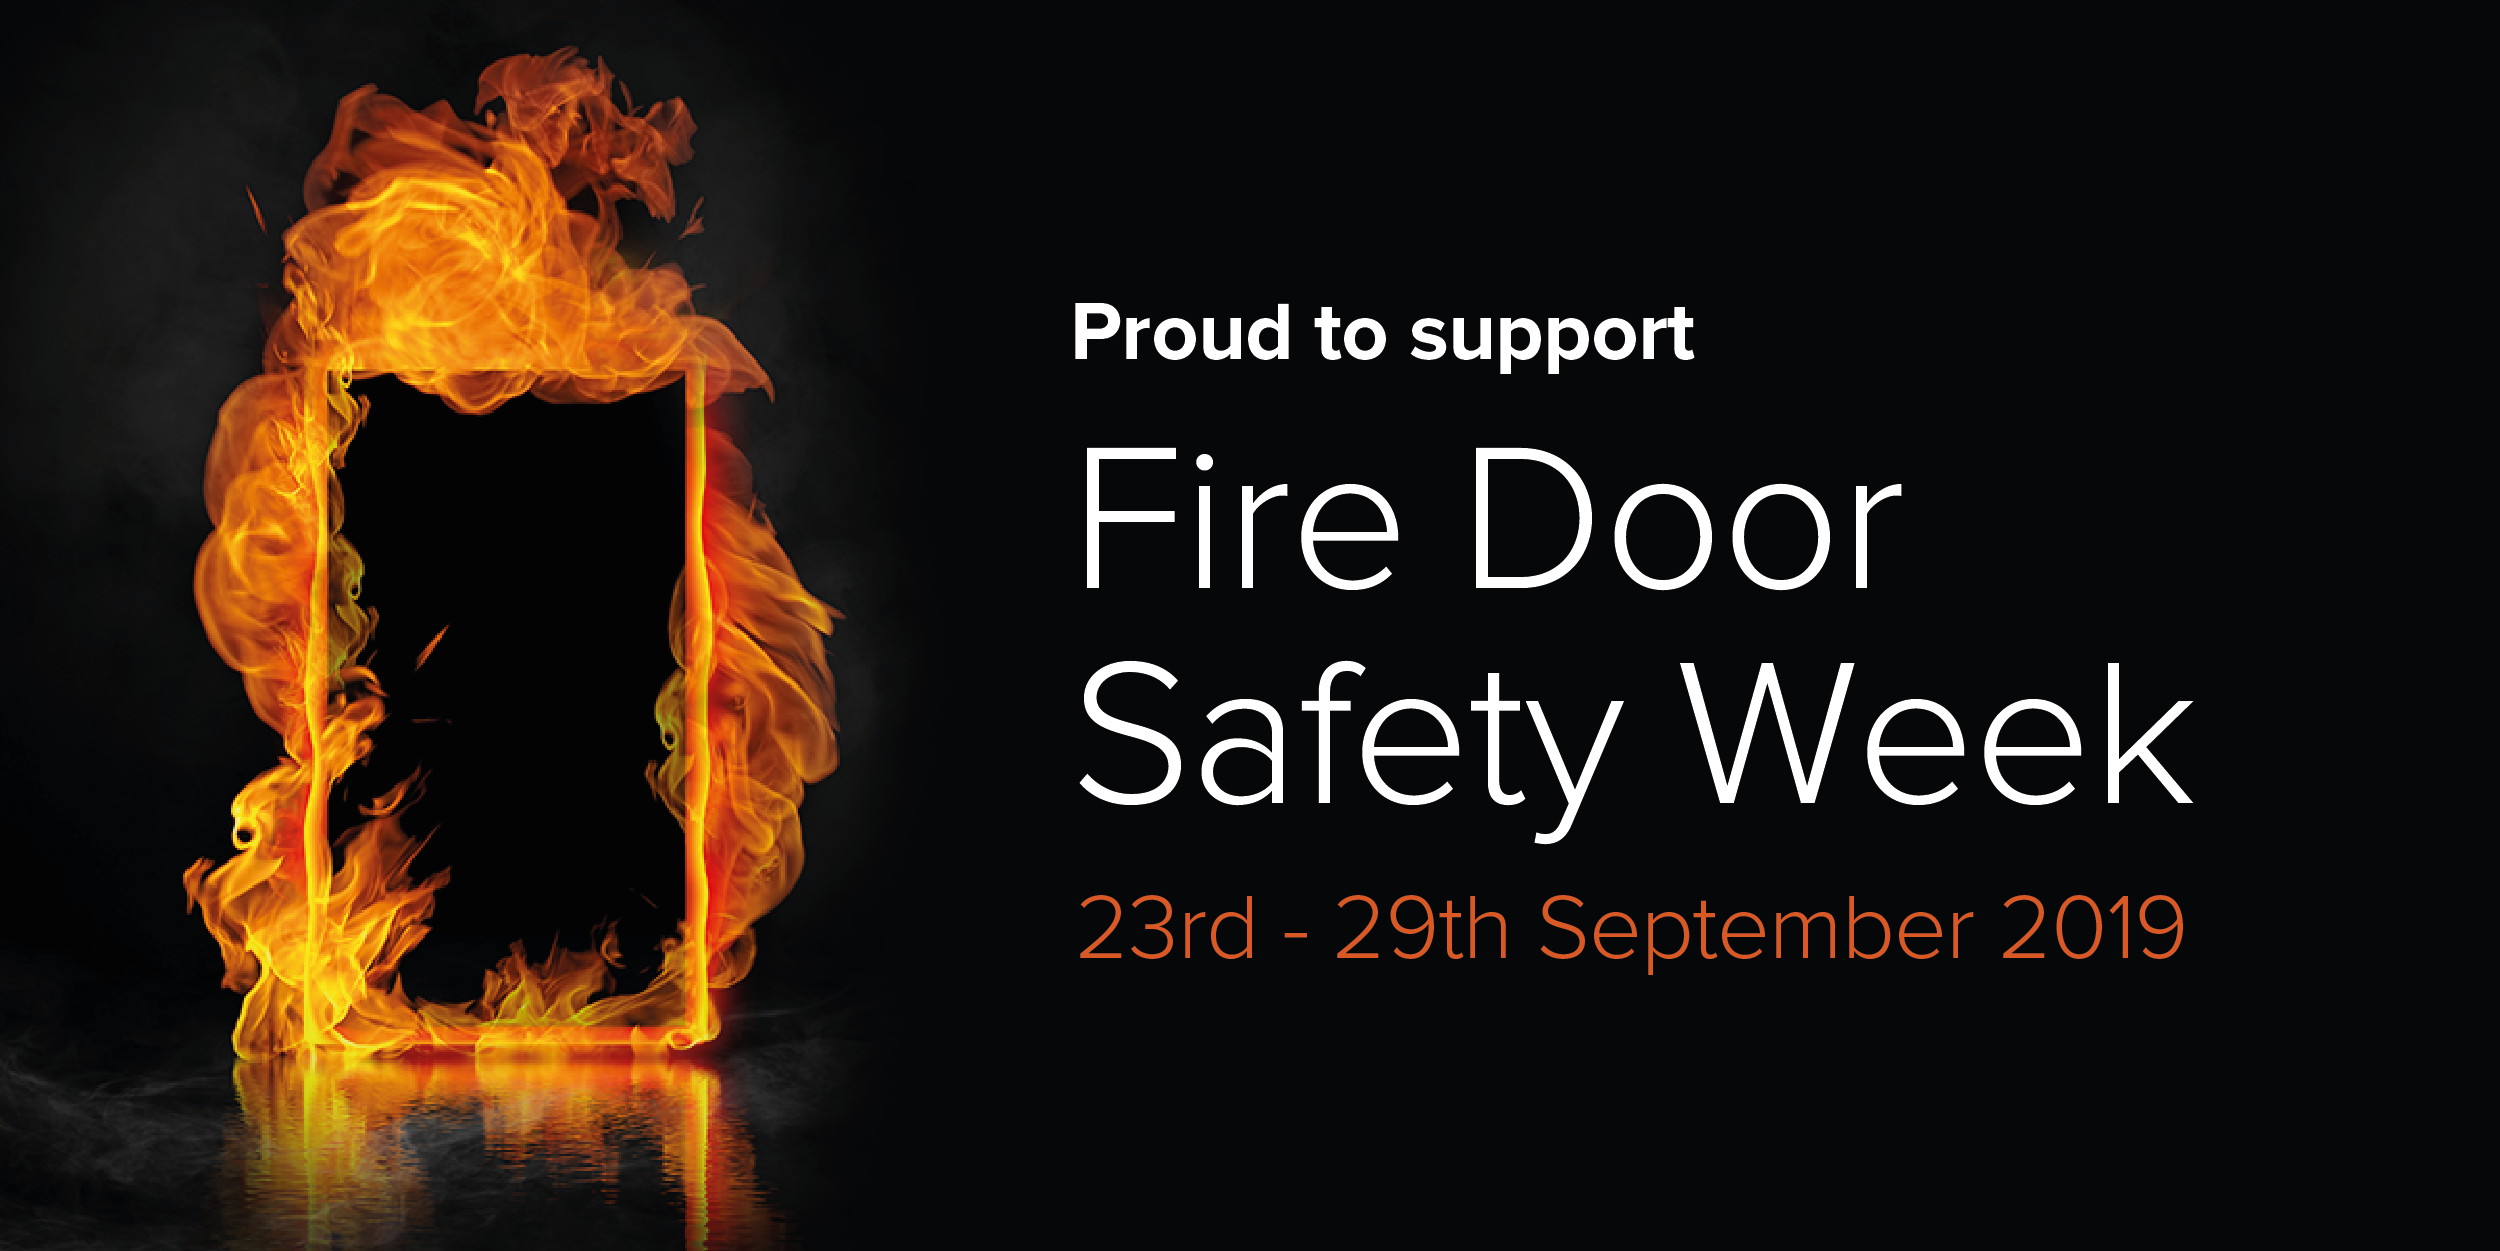 We're Supporting Fire Door Safety Week